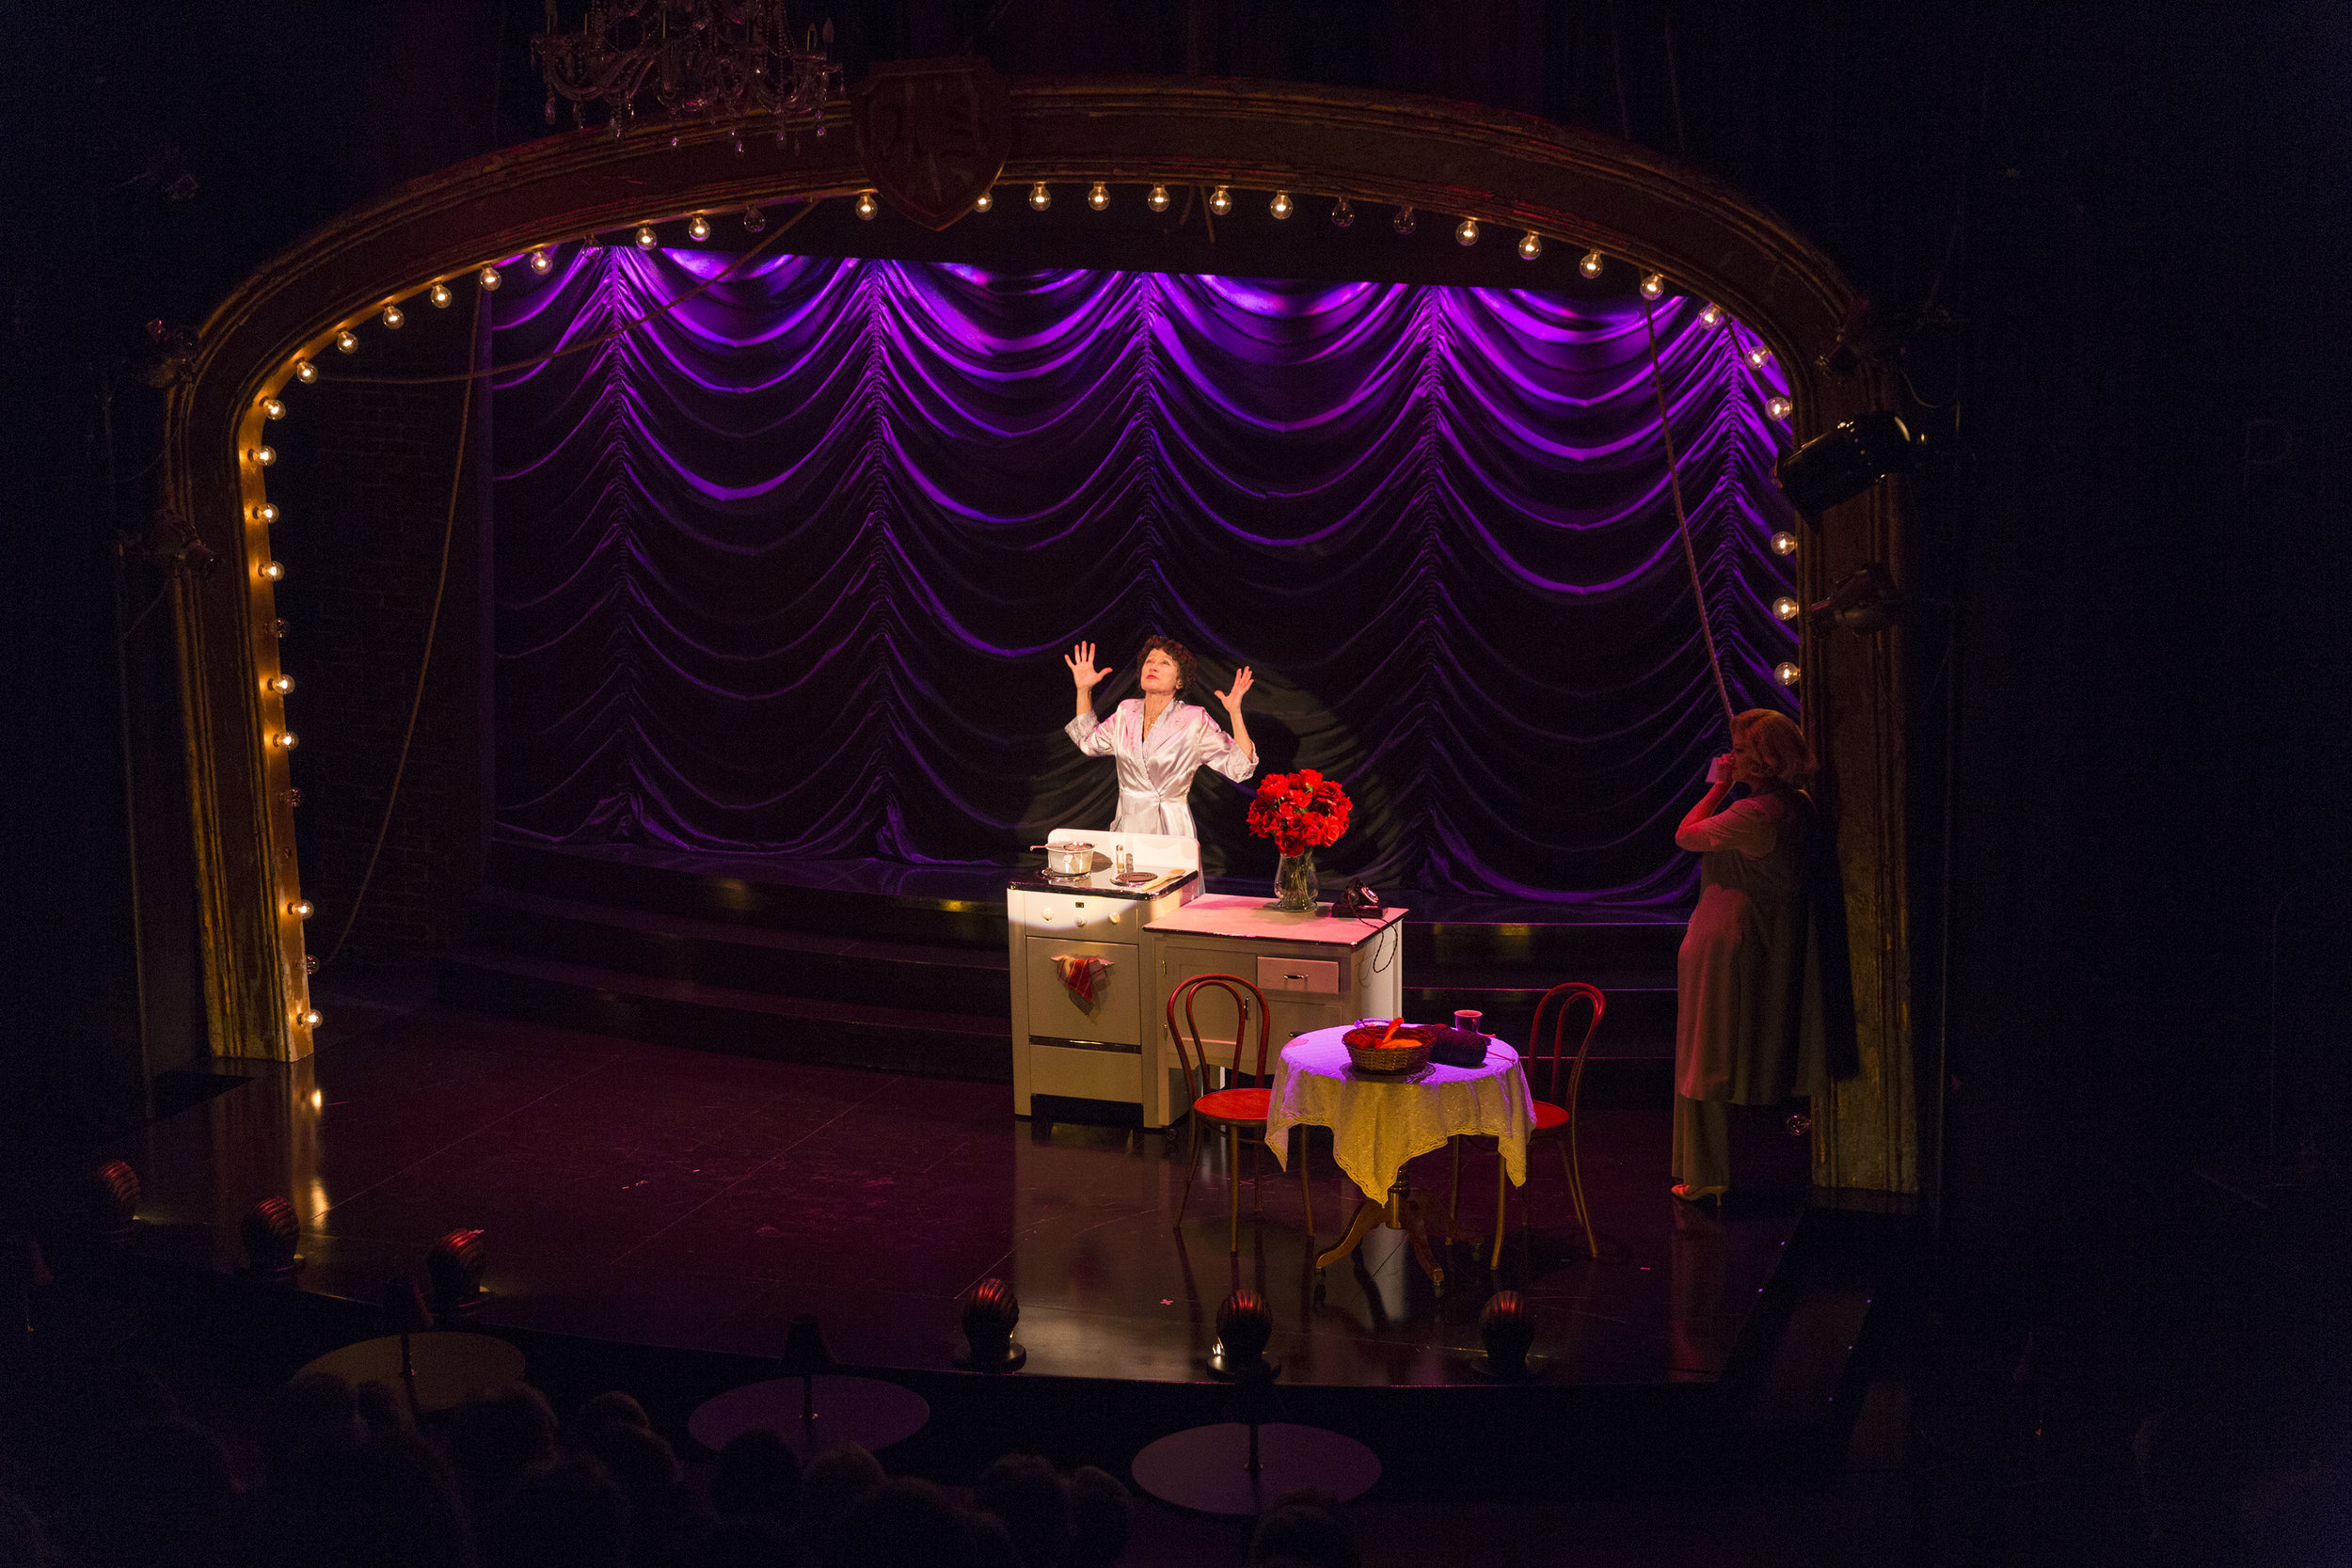 0793_Louise Pitre and Carly Street_The Angel and the Sparrow 2018_photo by Leslie Schachter.jpg